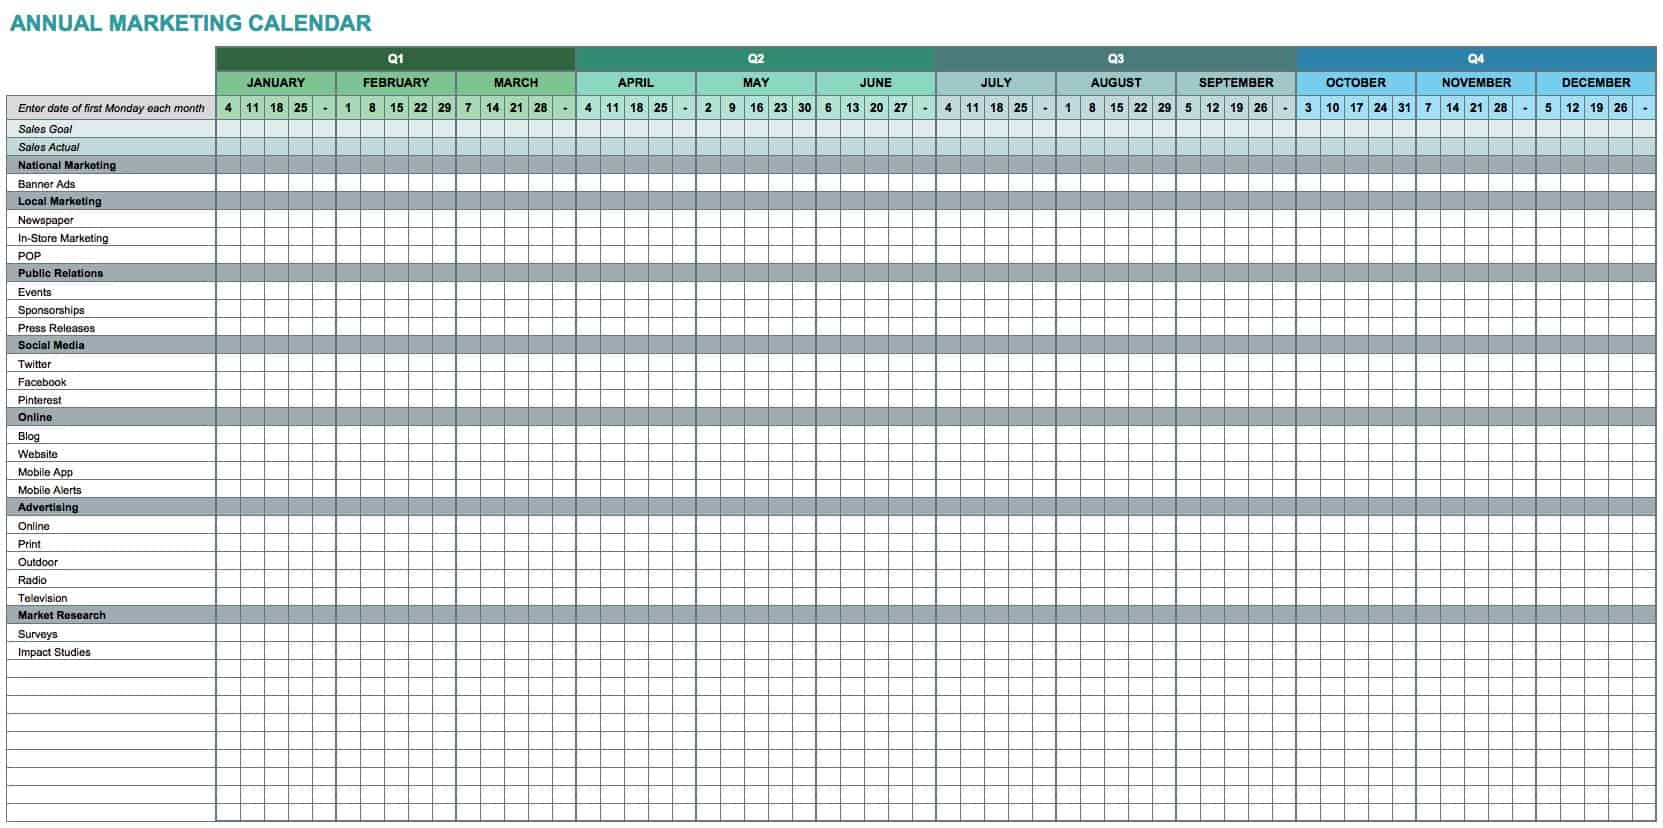 9 Modelos De Calendario De Marketing Para Excel Gratuitos